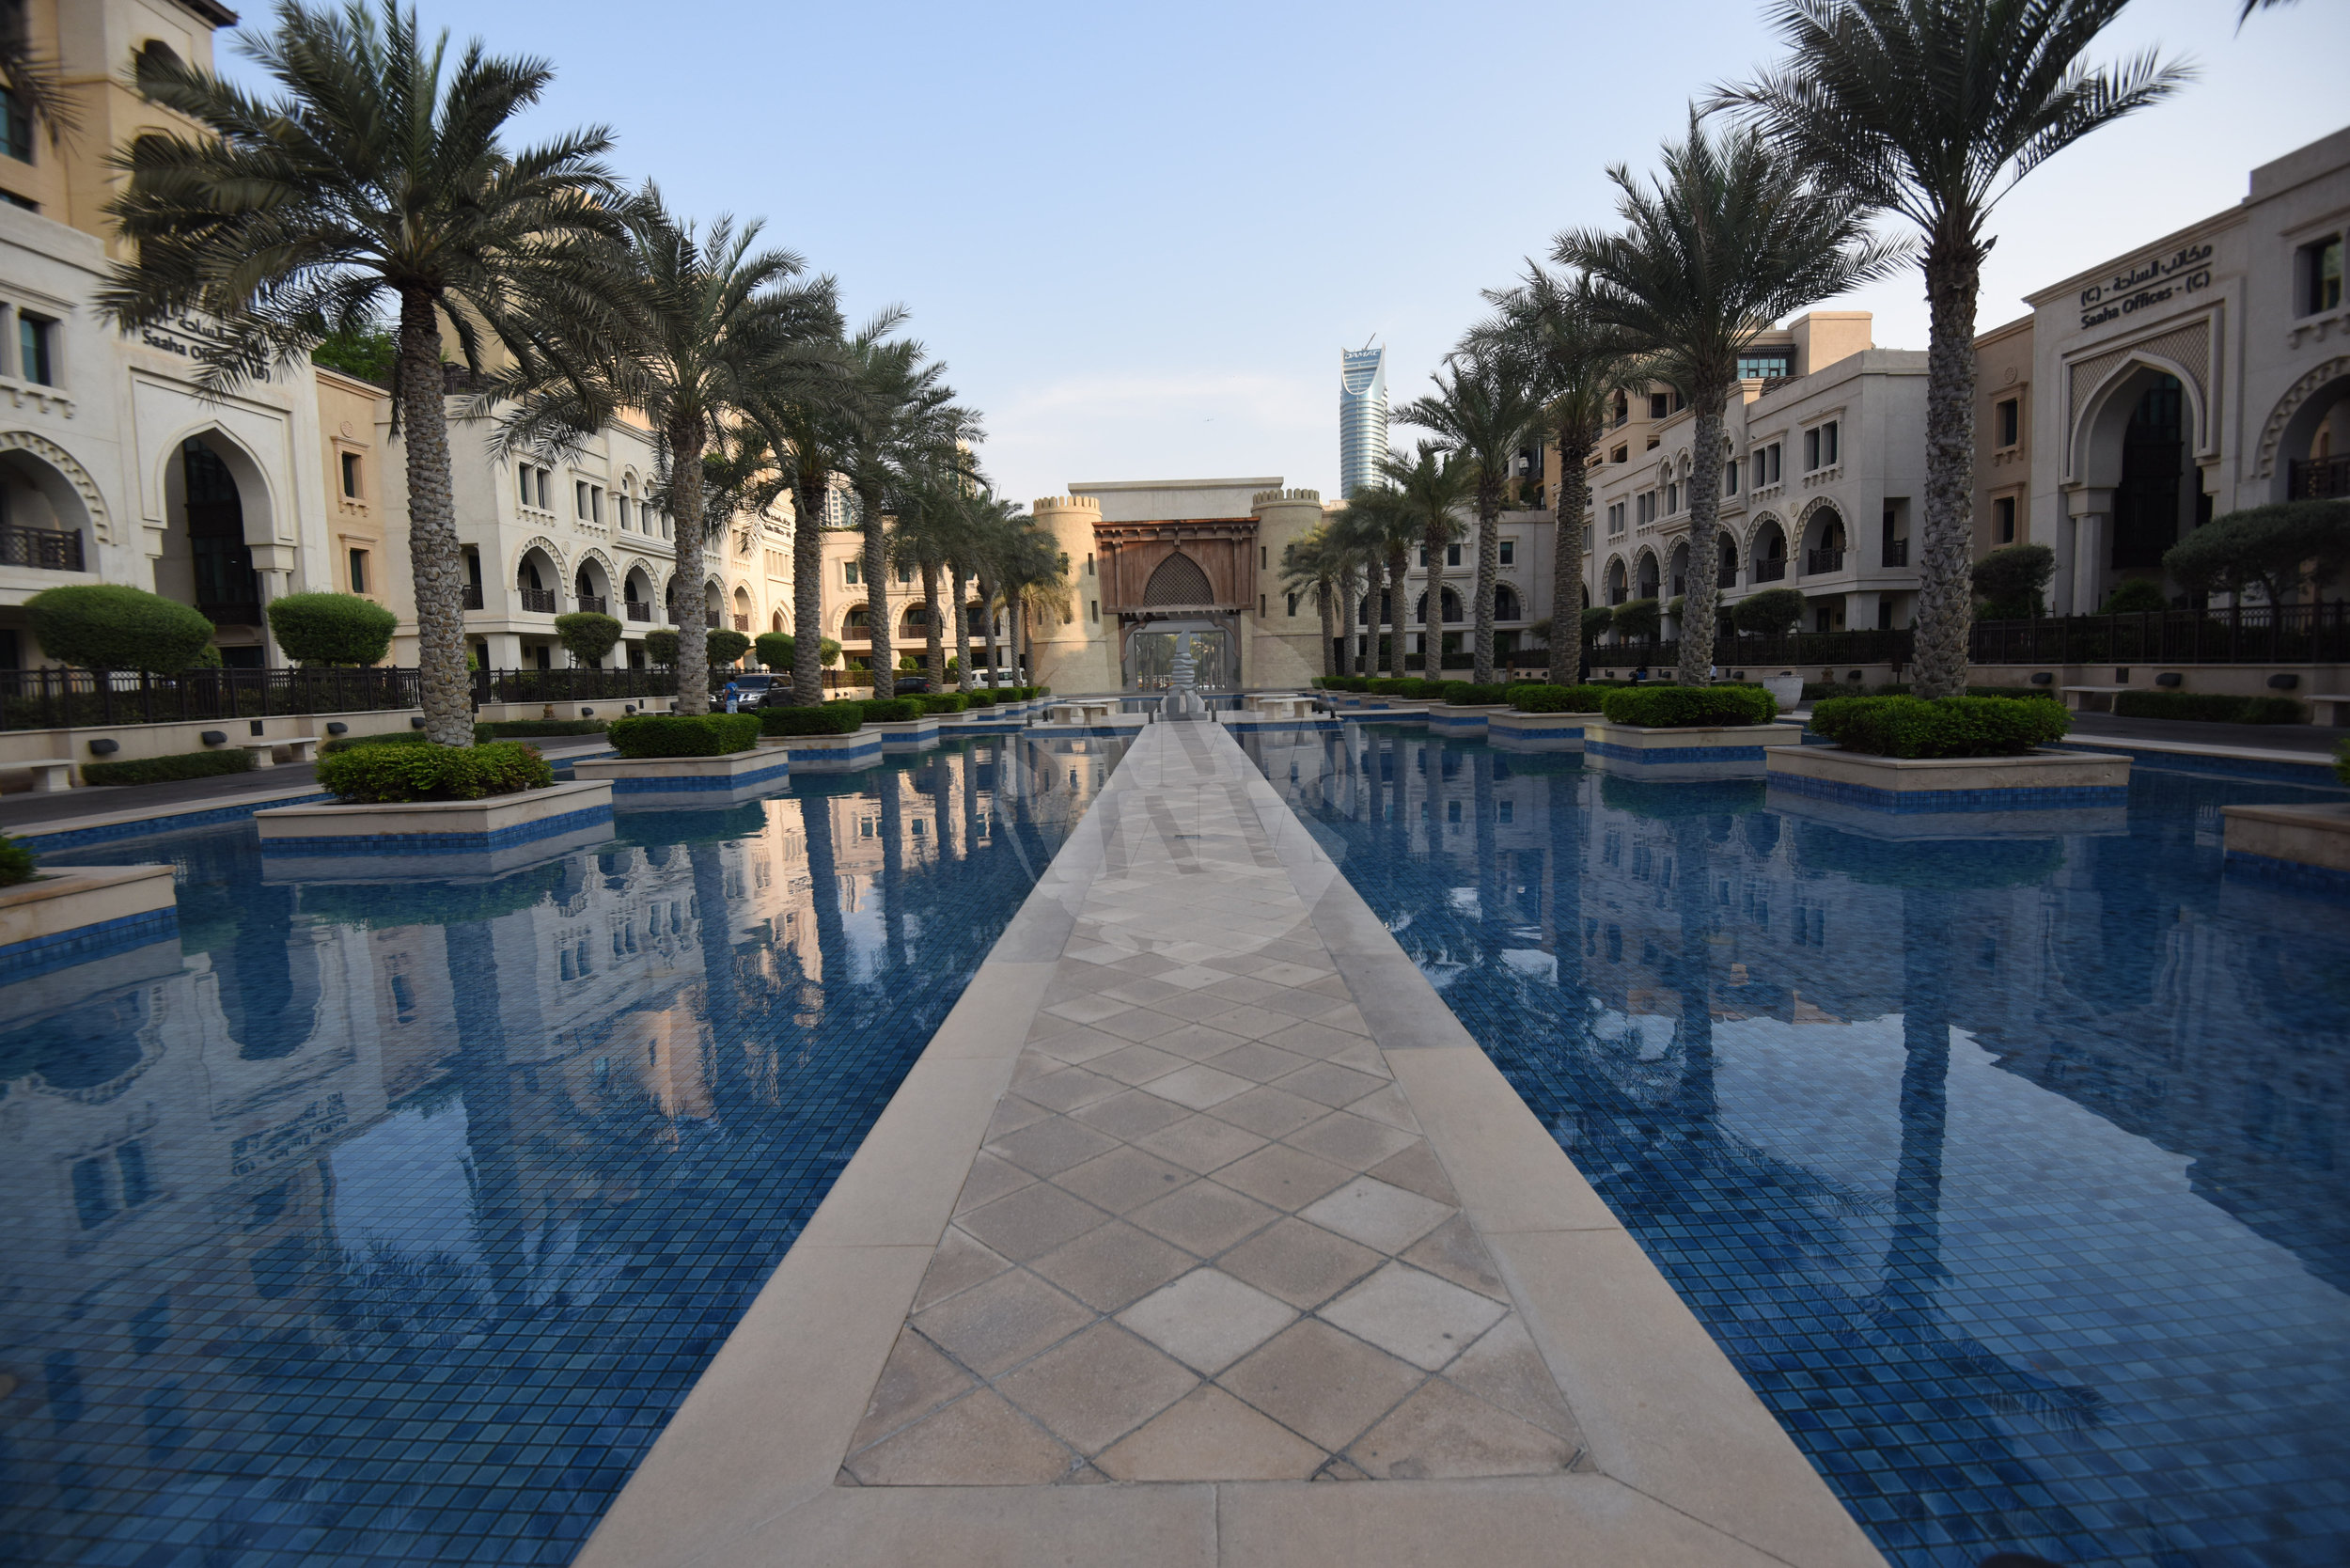 The building is authentically Arabic in its style and design, its tranquil setting help you forget you are in the centre of the city!